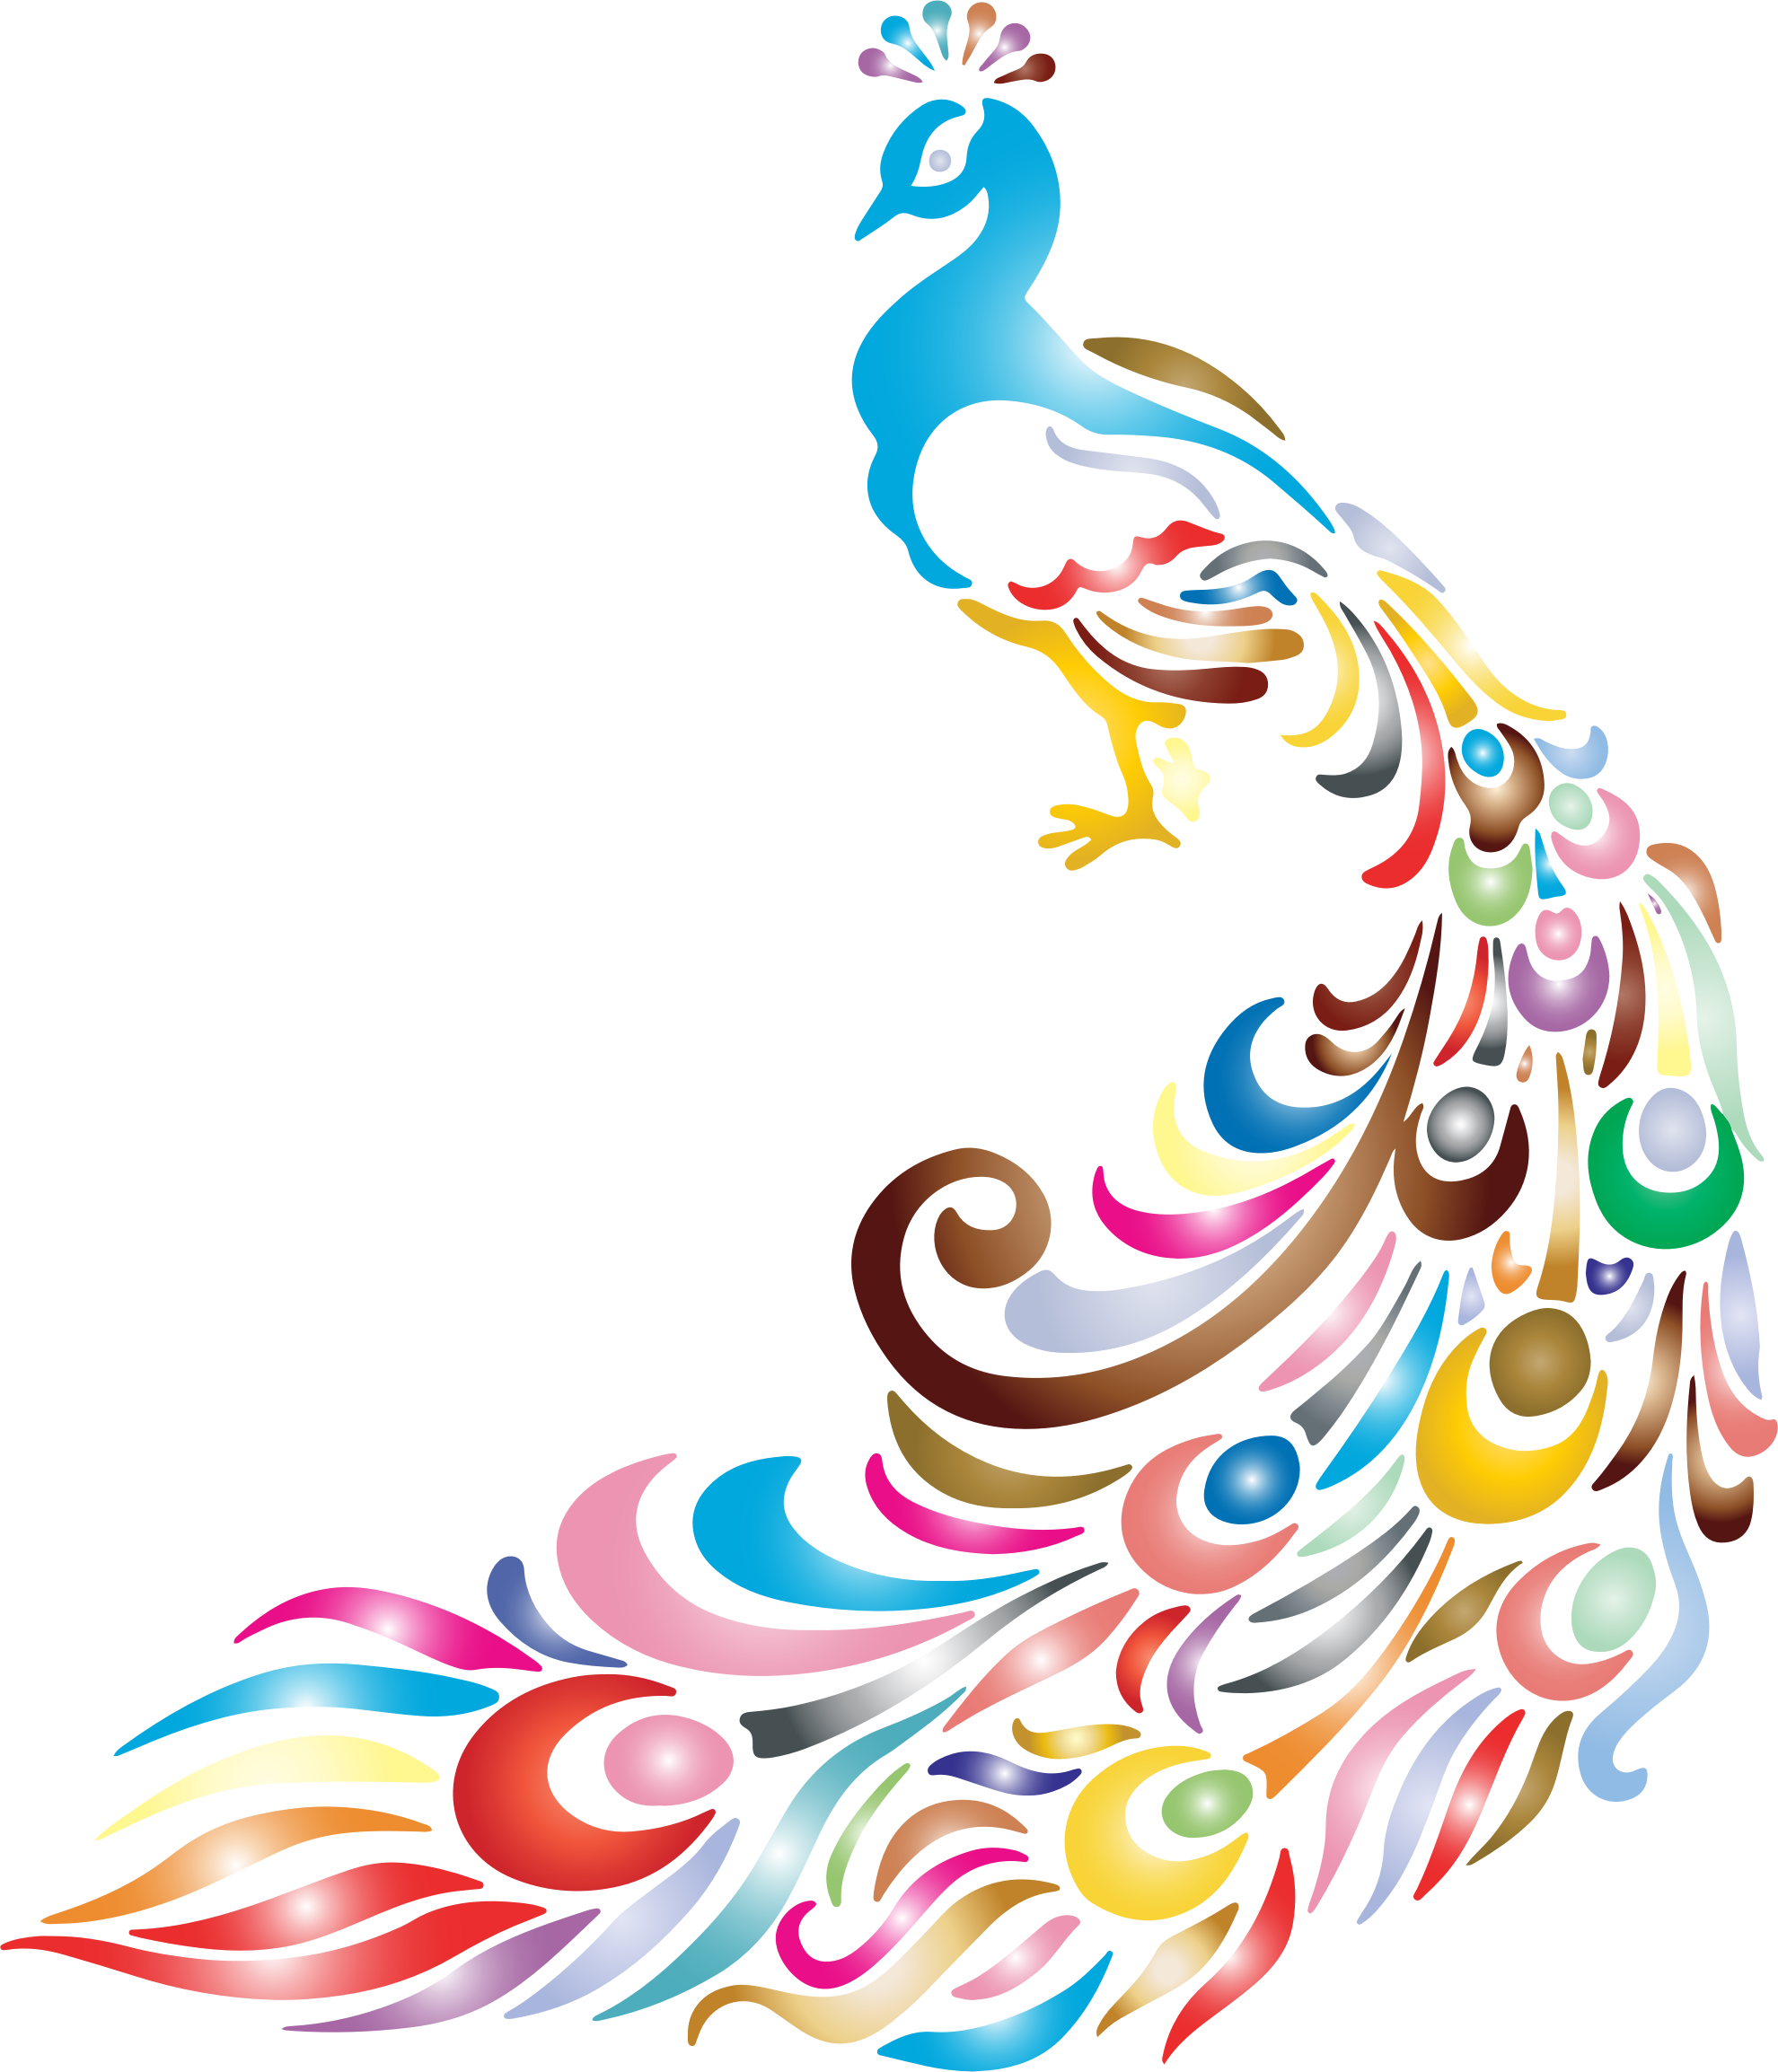 Chromatic no background clipartix. Peacock clipart gold peacock